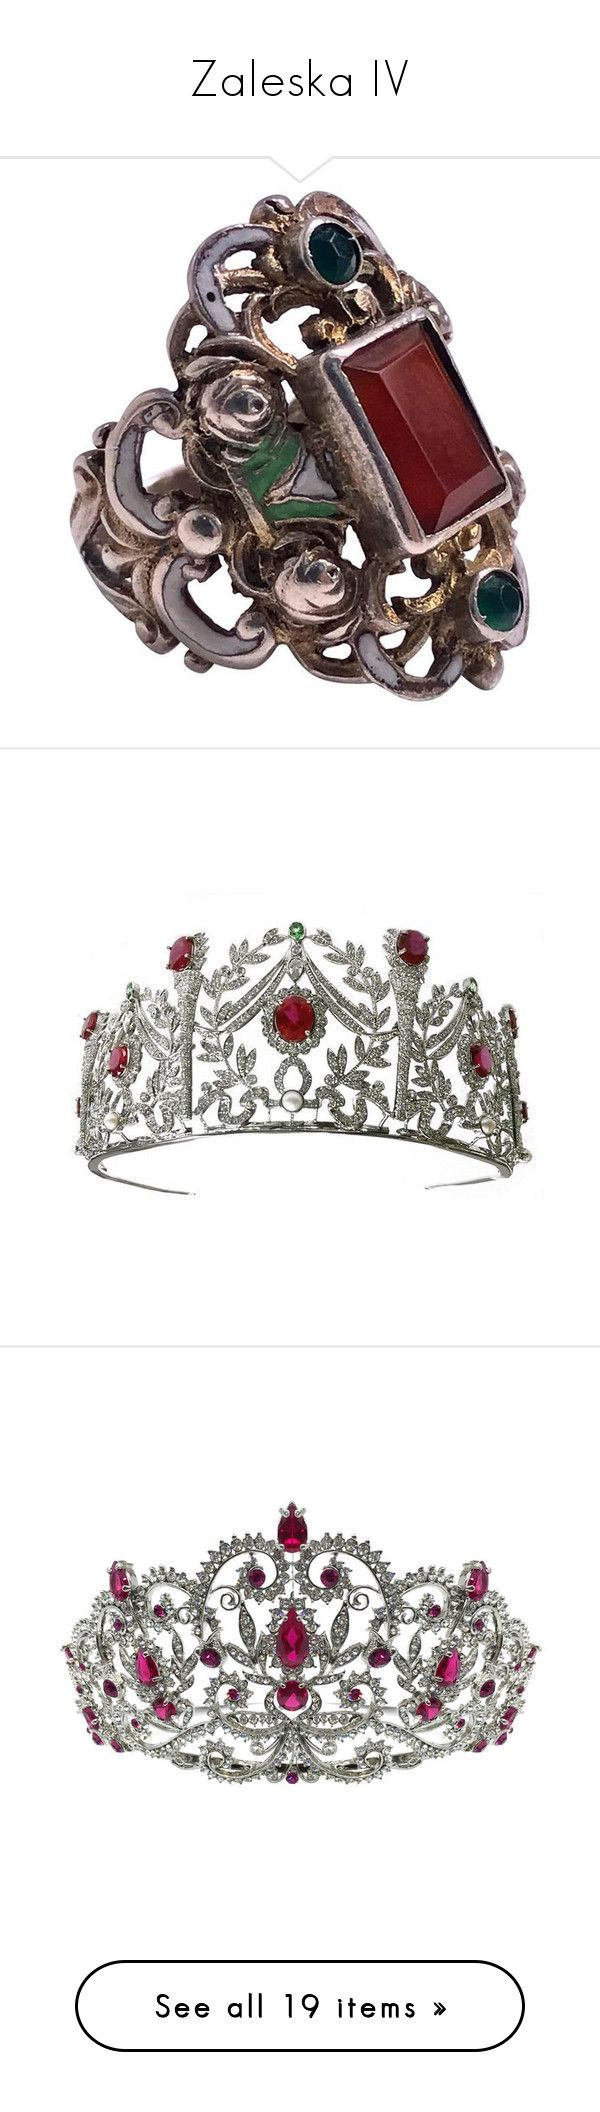 """""""Zaleska IV"""" by shulamithbond on Polyvore featuring jewelry, rings, multiple, silver enamel jewellery, bezel setting ring, enamel jewelry, bezel set ring, silver rings, tiaras and crowns"""